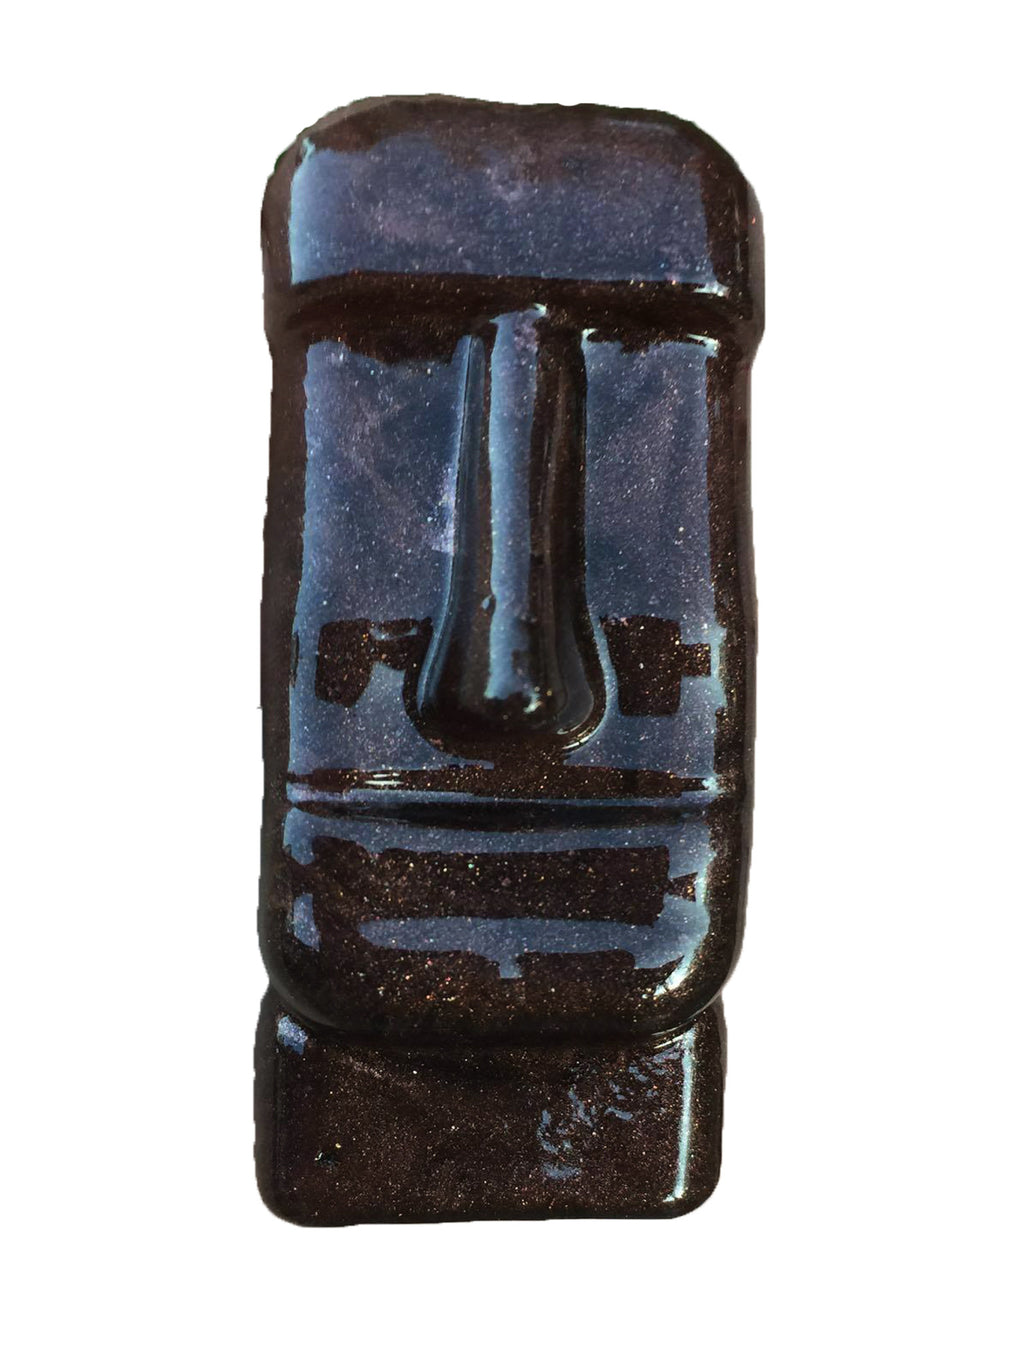 Moai Statue Brooch in Hickory Shimmer - Natasha Marie Clothing